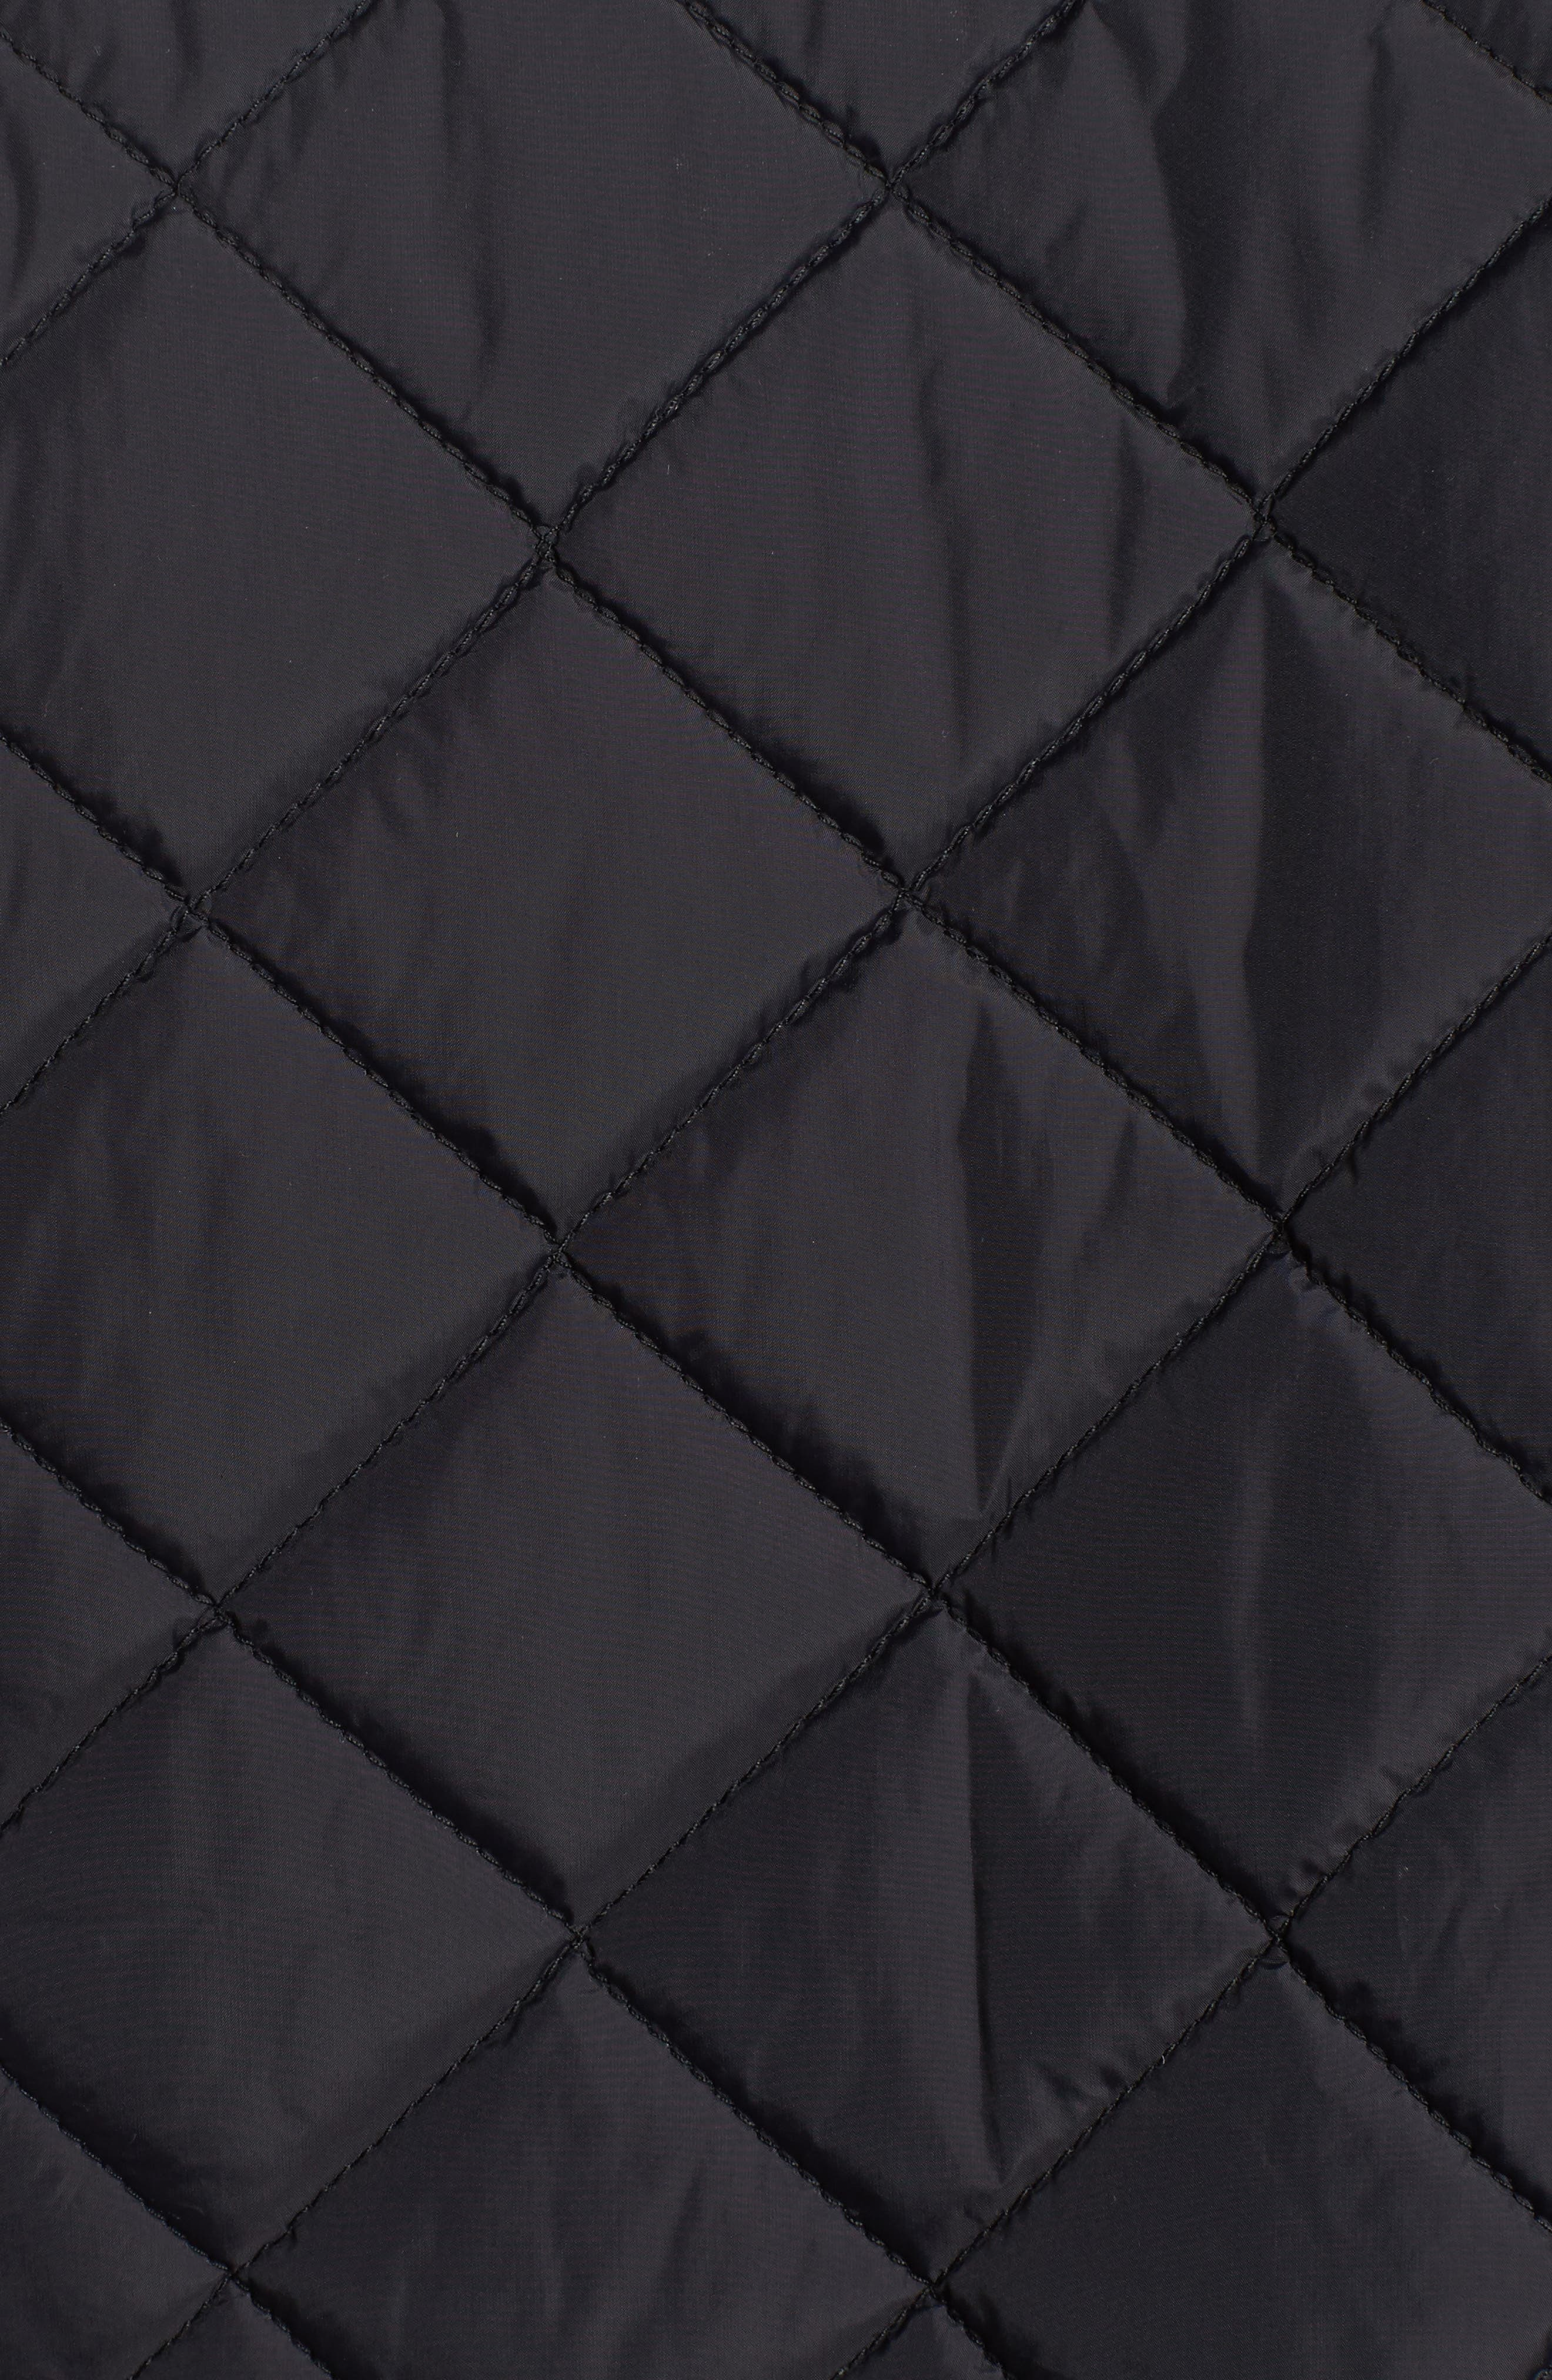 Diamond Quilted Full Zip Jacket,                             Alternate thumbnail 12, color,